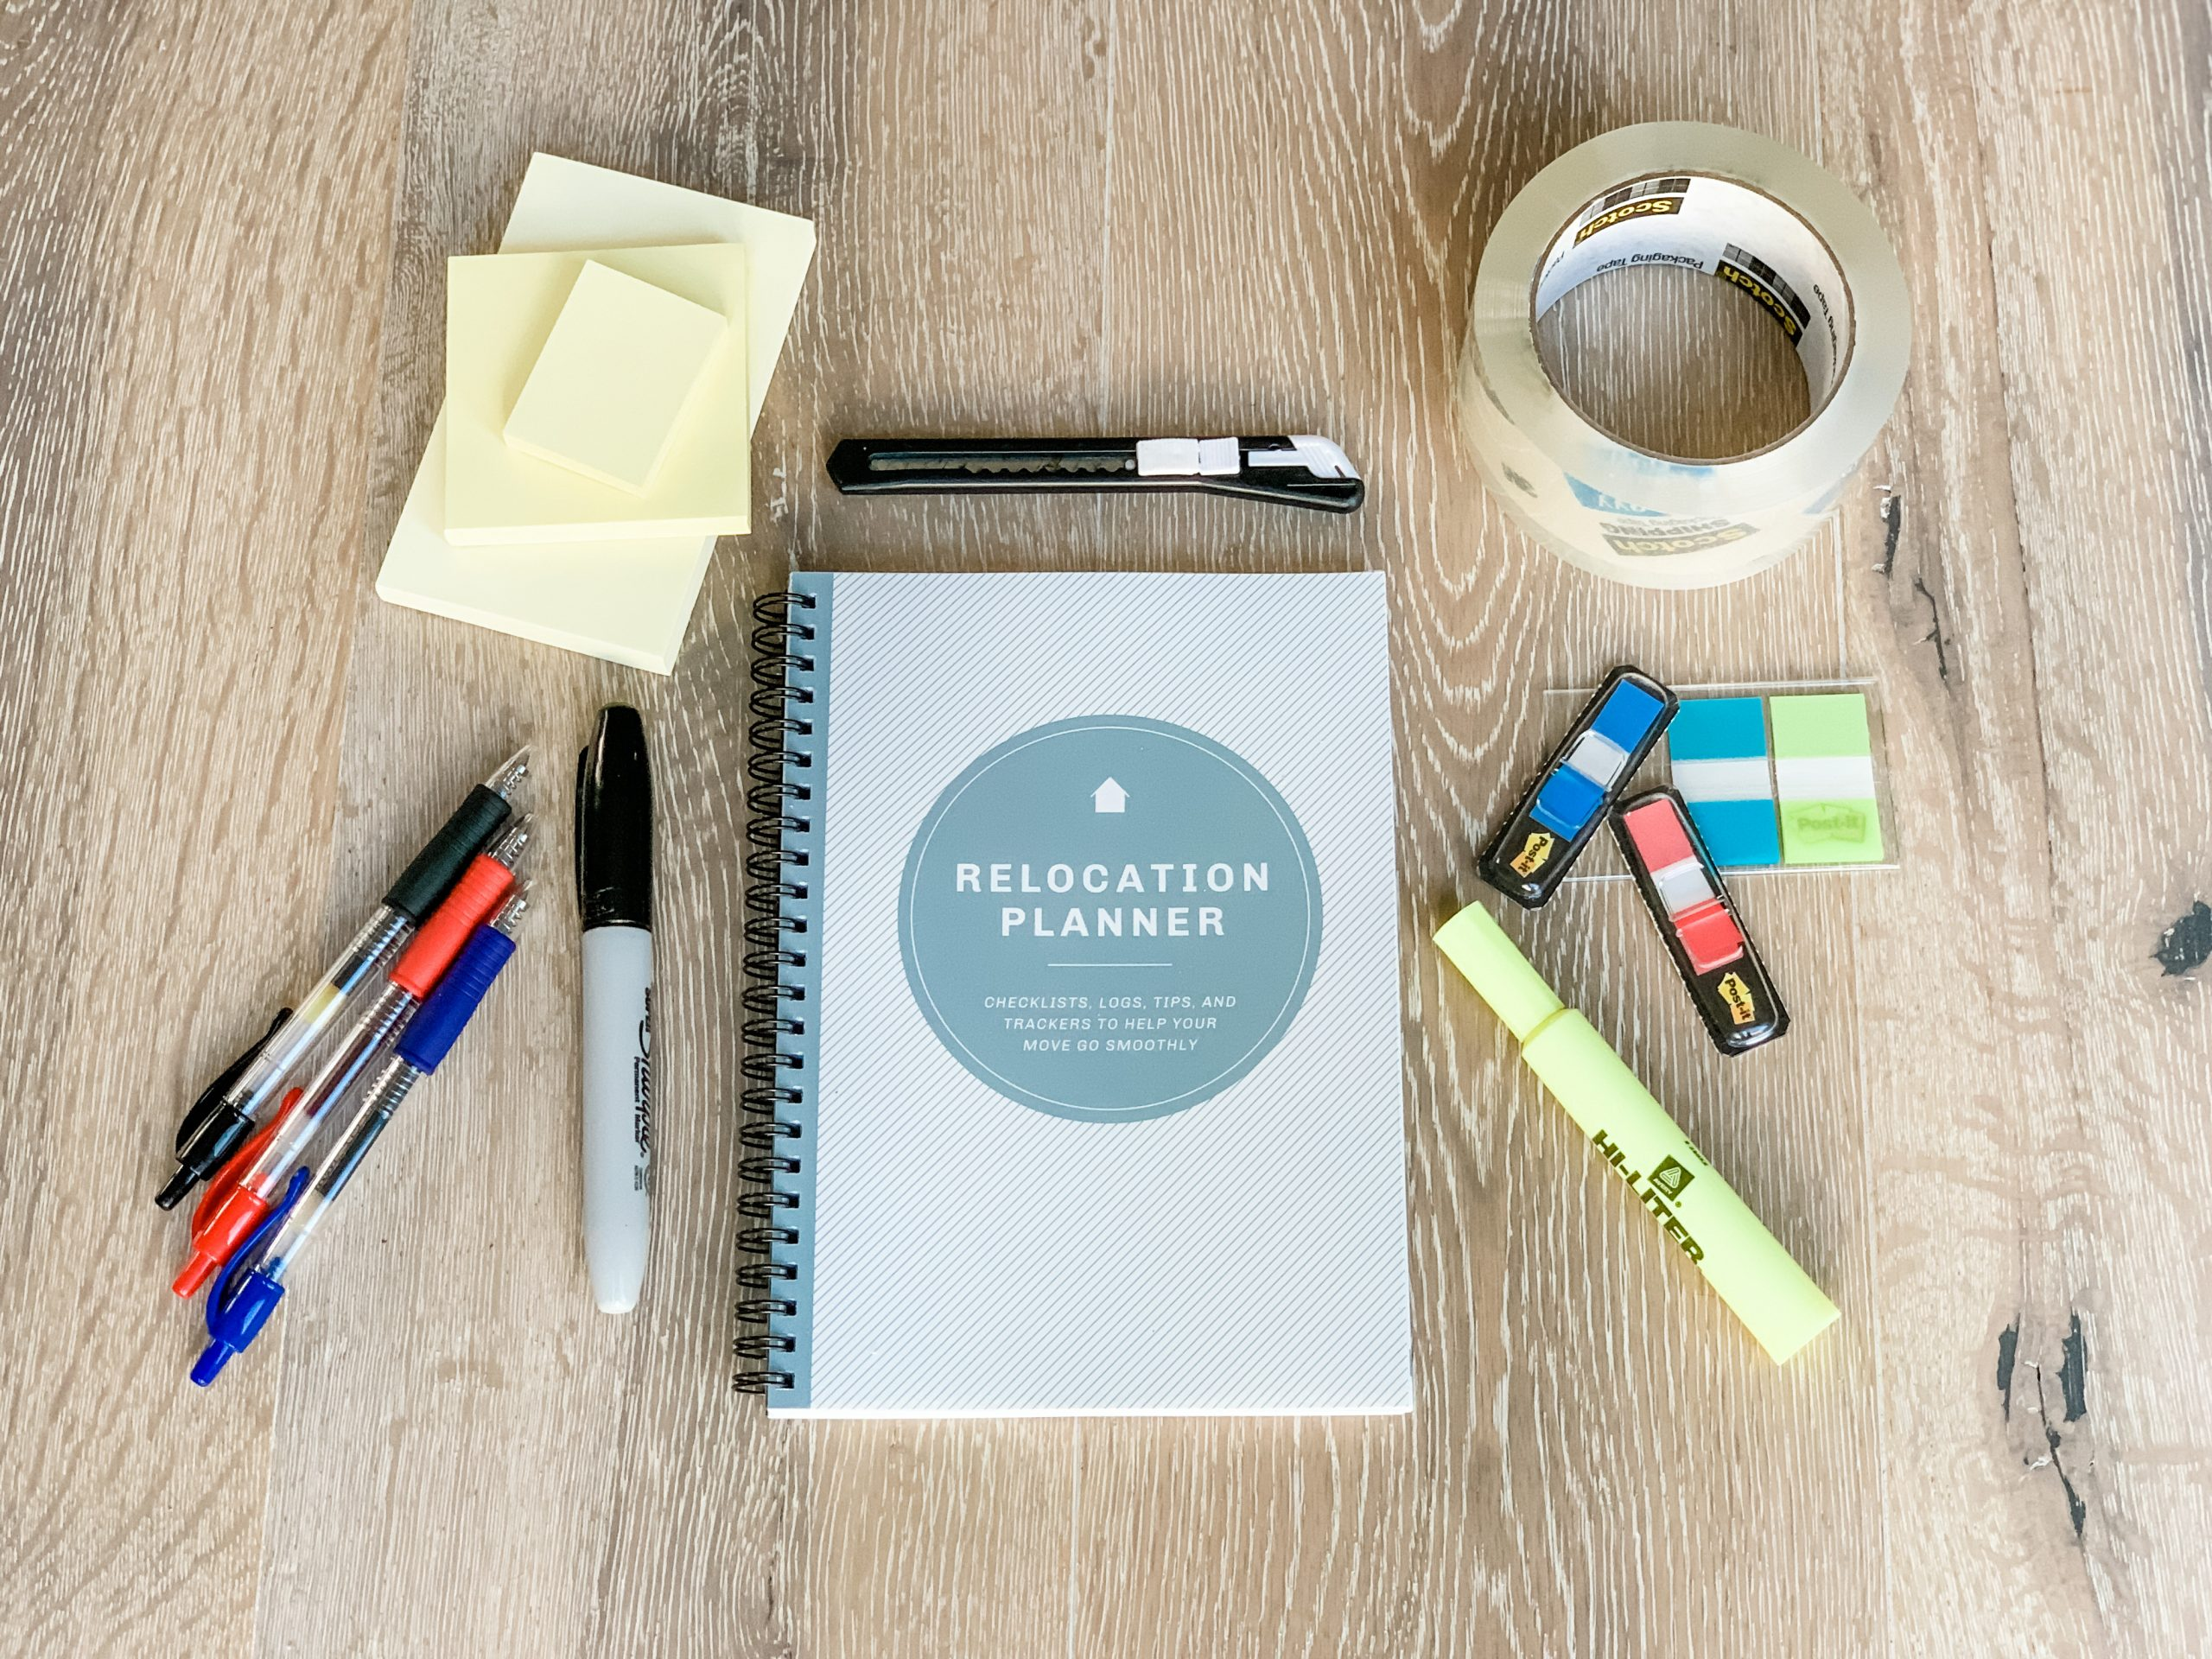 relocation planner surrounded by office supplies: tape, highlighters, markers, pens, post-it notes, box cutter, tape